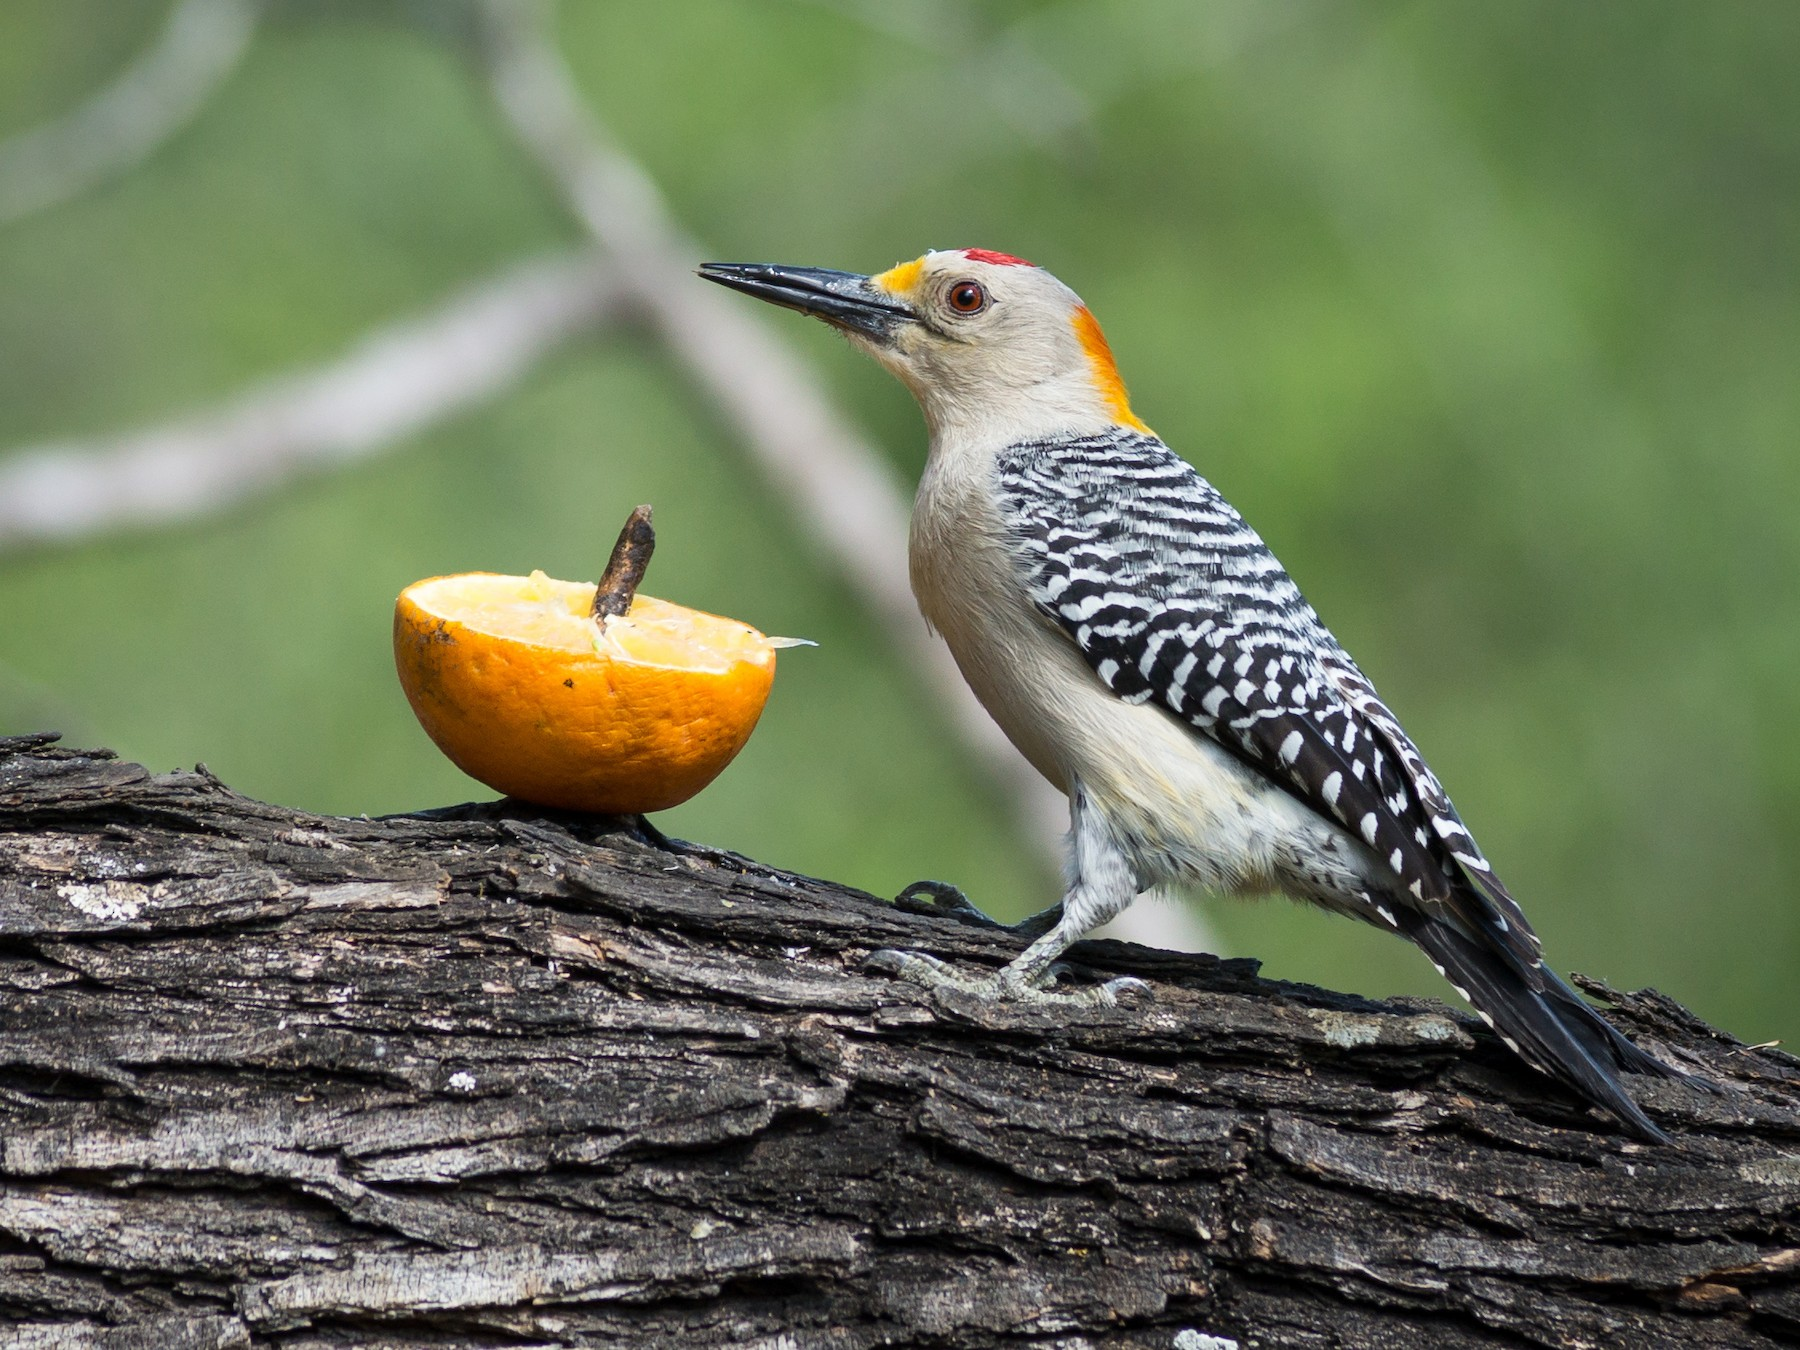 Golden-fronted Woodpecker - Becca Engdahl